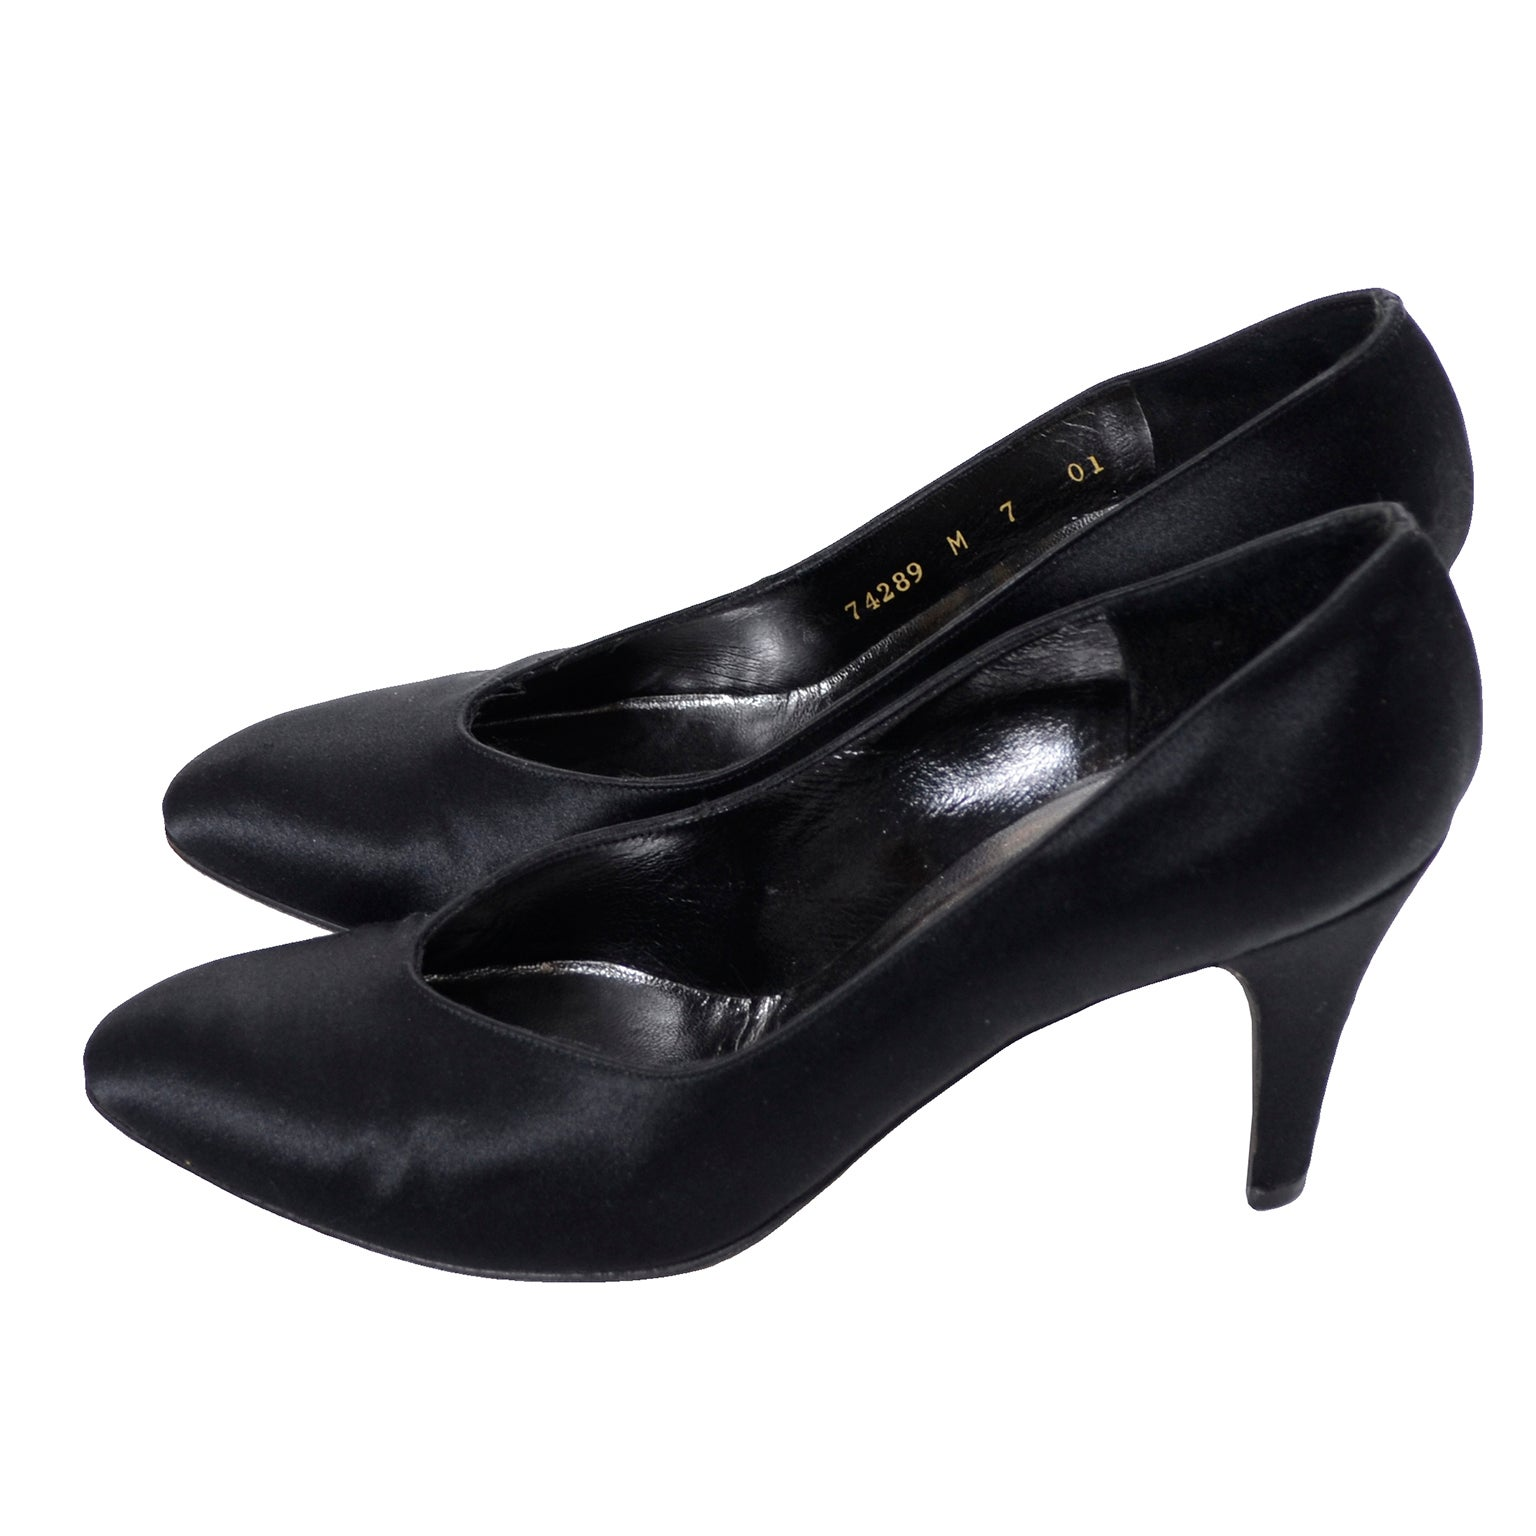 24e14a64a Yves Saint Laurent YSL Vintage Black Satin Shoes Heels 7M For Sale at  1stdibs